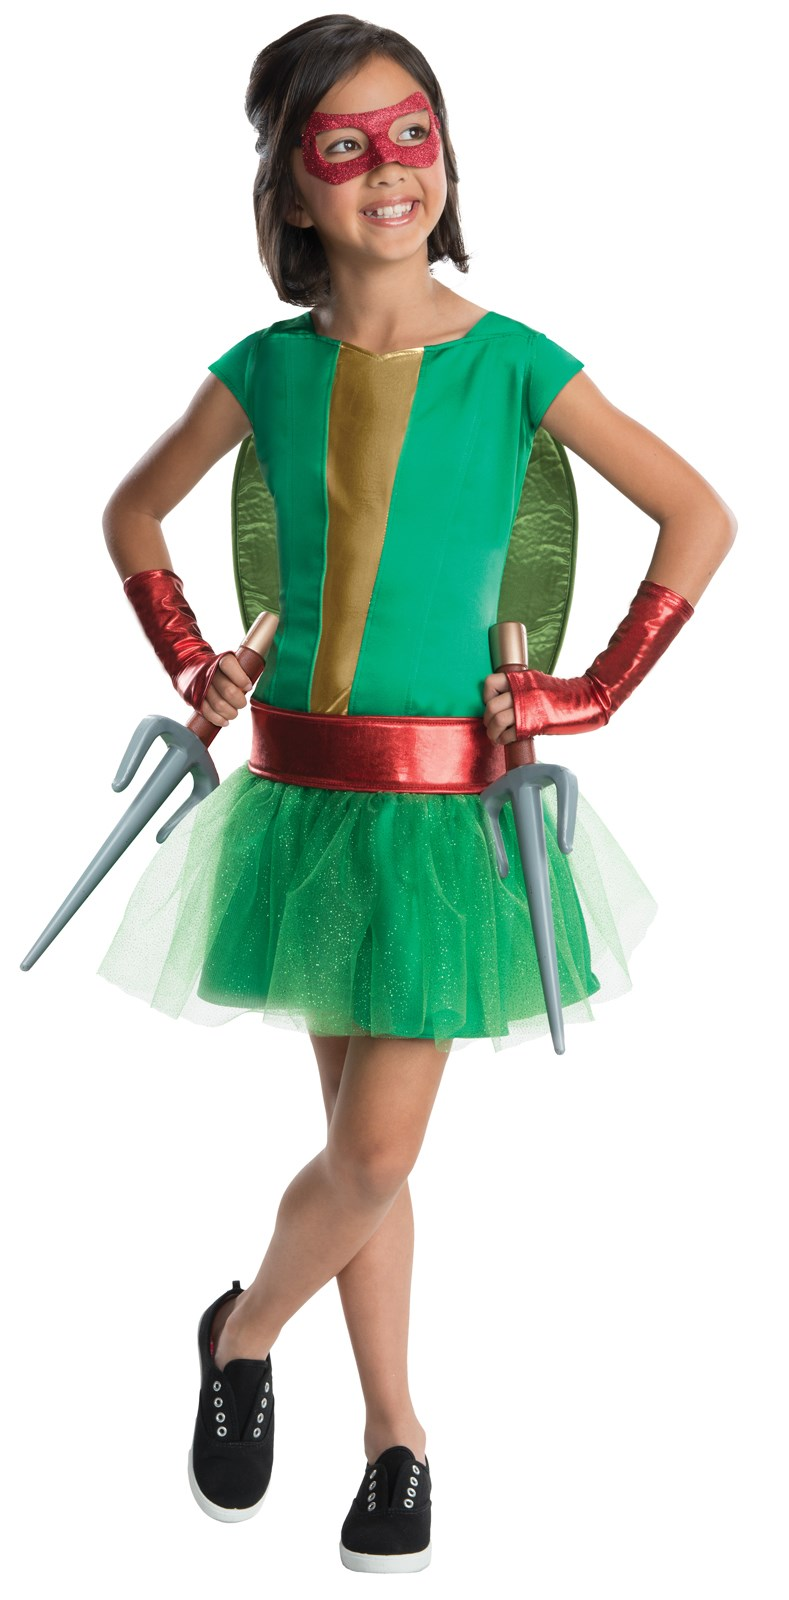 TMNT - Deluxe Raphael Girl Tutu Costume Medium (8-10)